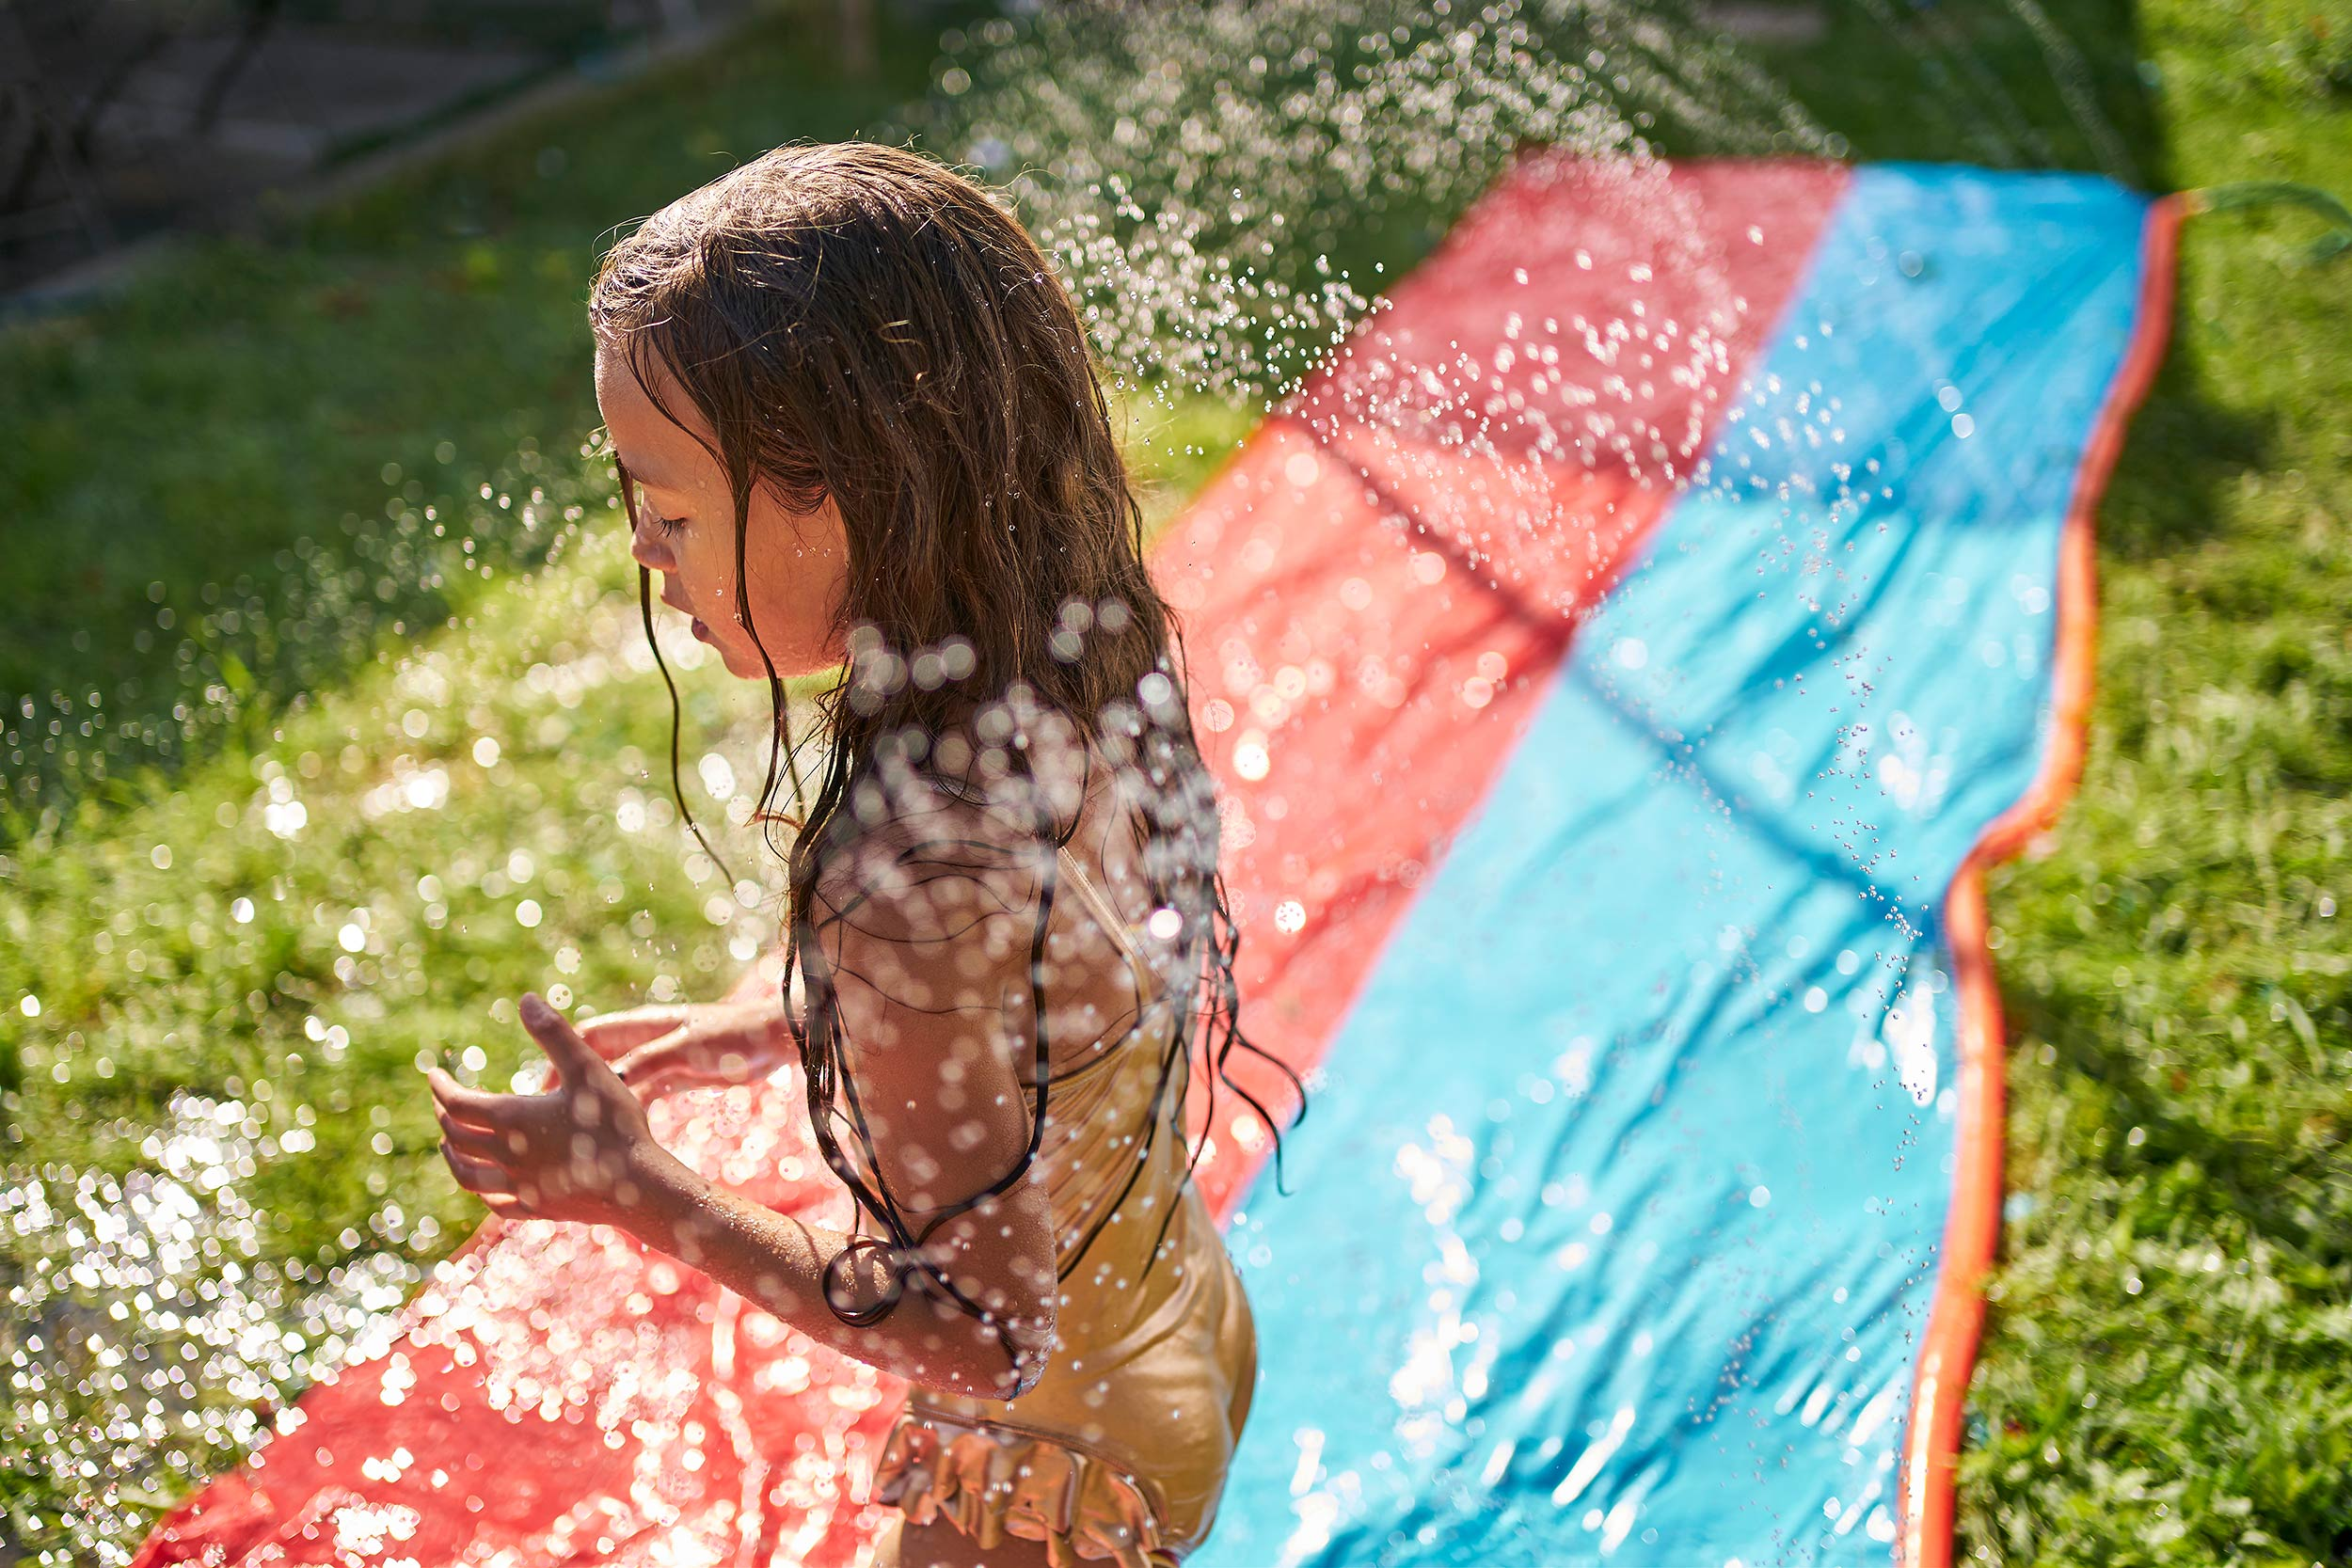 babuljak-unstock-kids-backyard_fun_0878-cold